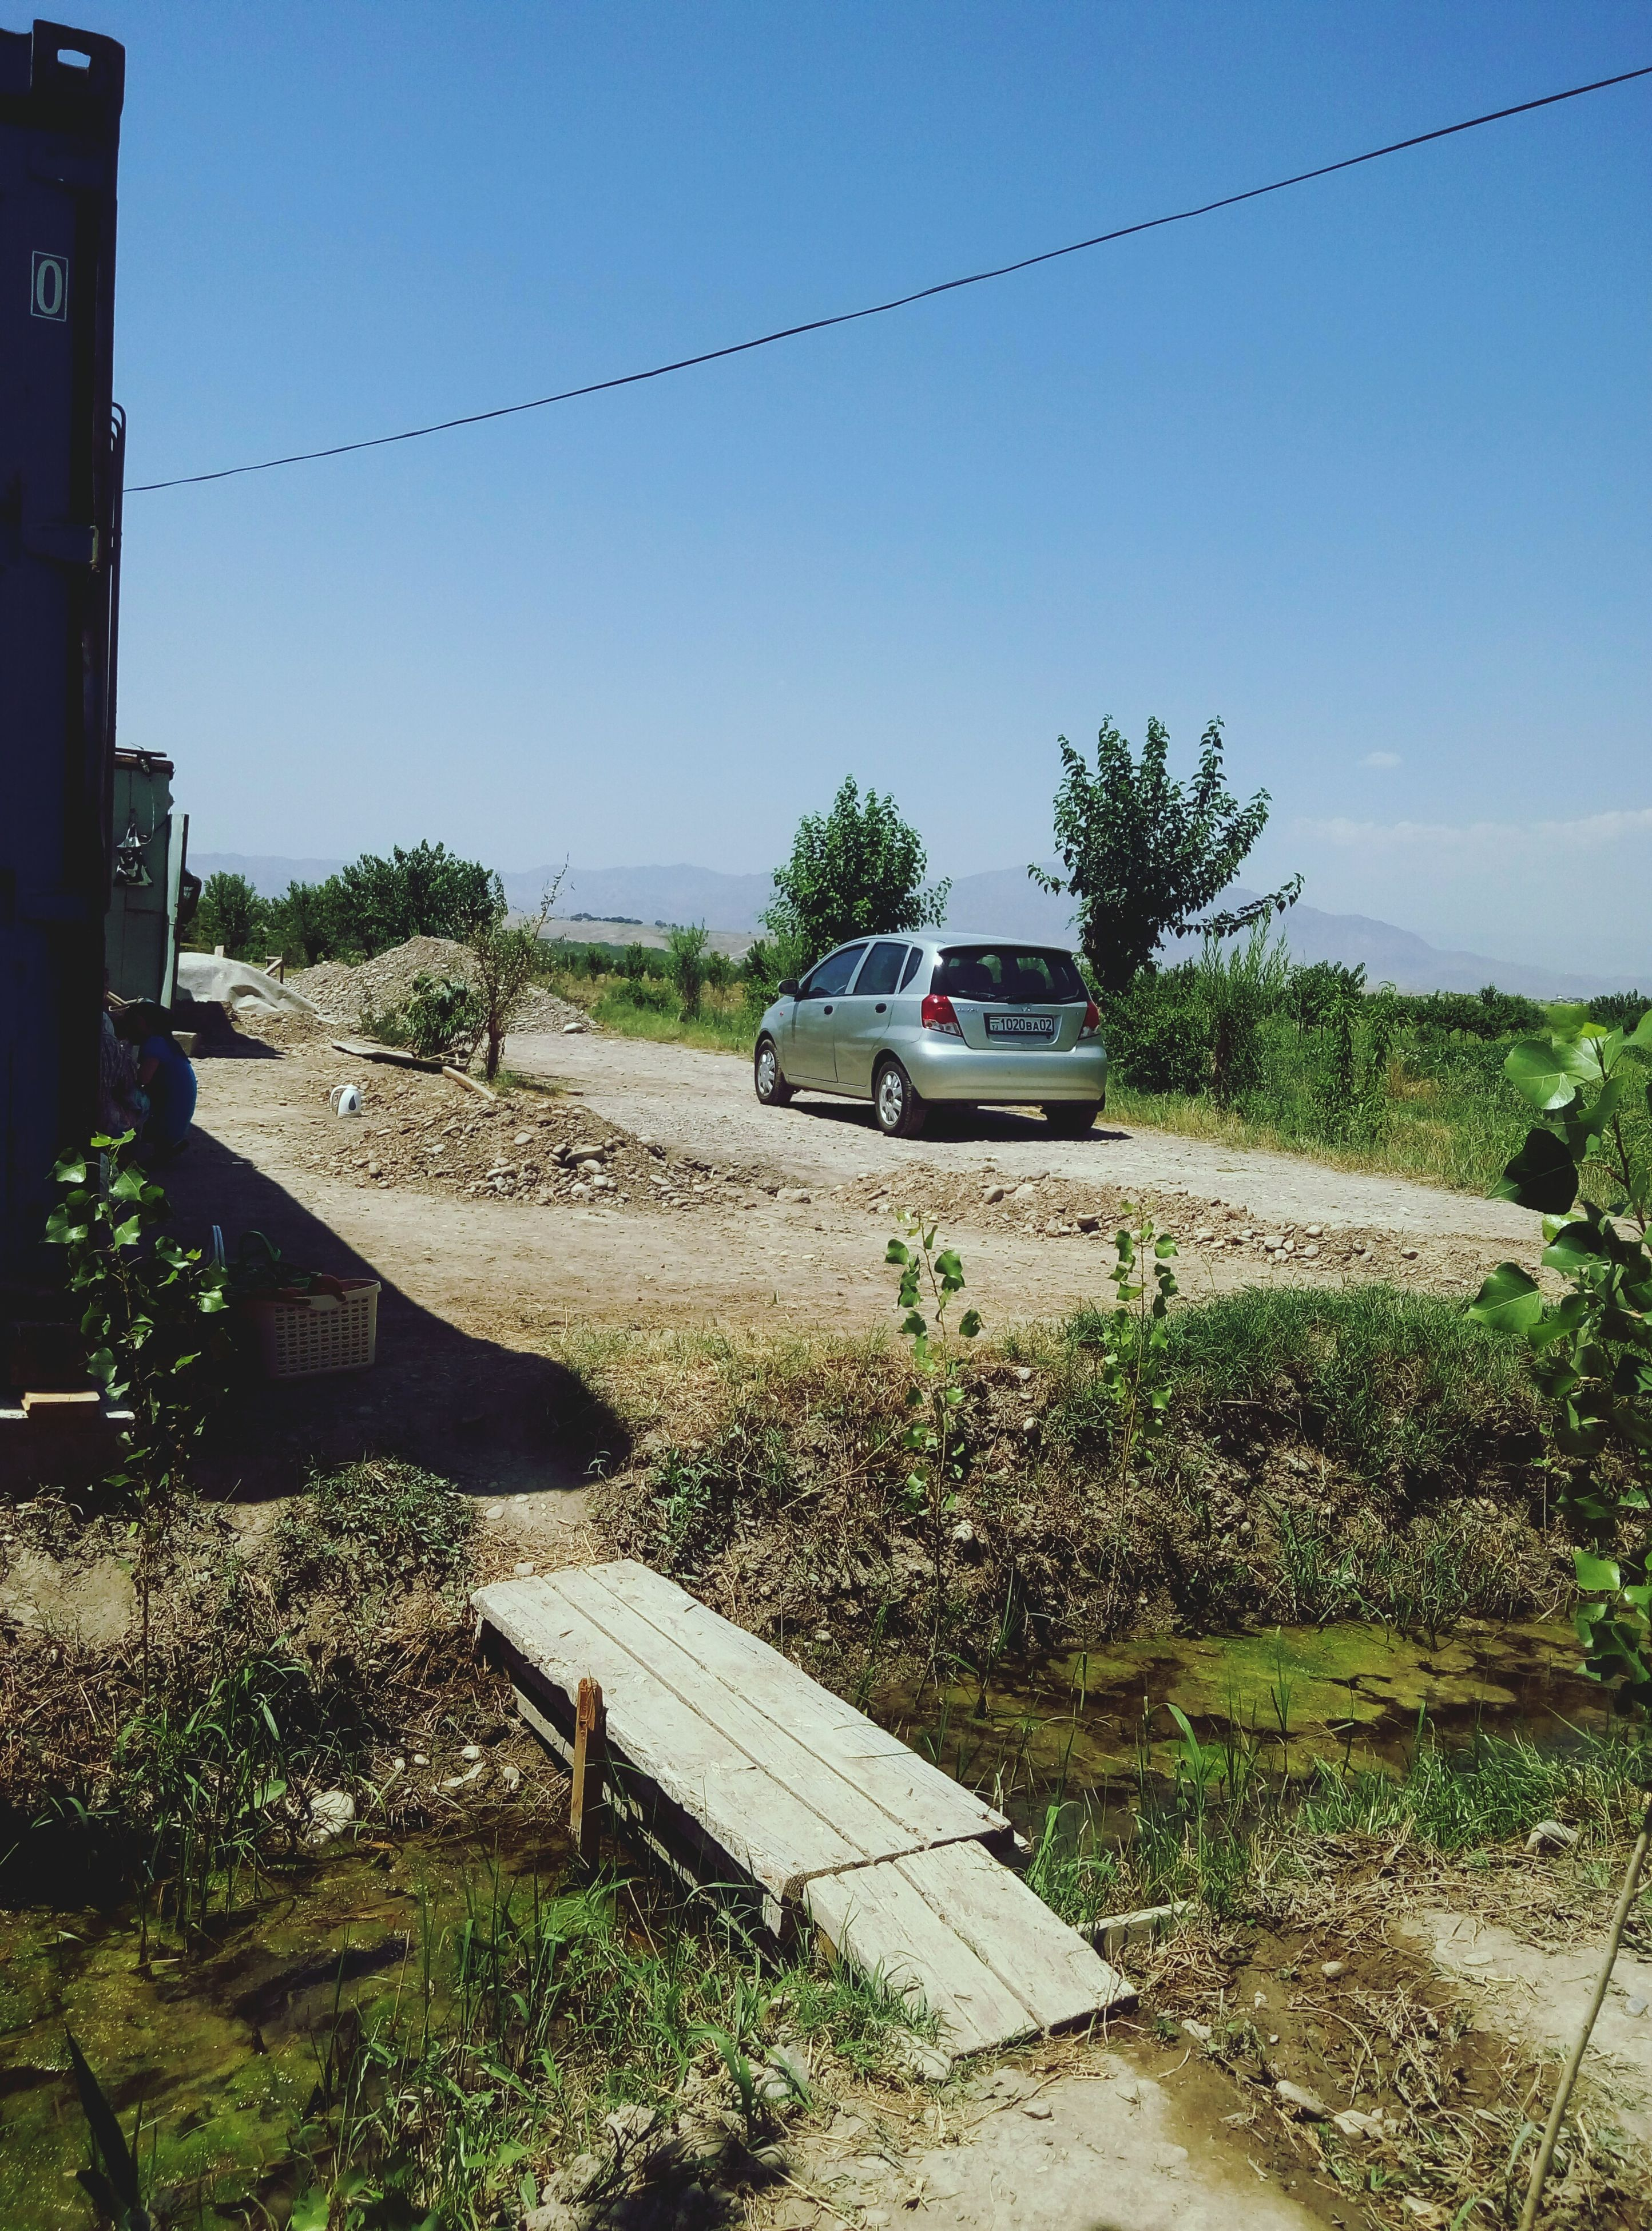 land vehicle, mode of transport, tree, road, sky, plant, sunlight, growth, grass, outdoors, day, nature, green color, no people, blue, stationary, parking, landscape, tranquility, rural scene, parked, the way forward